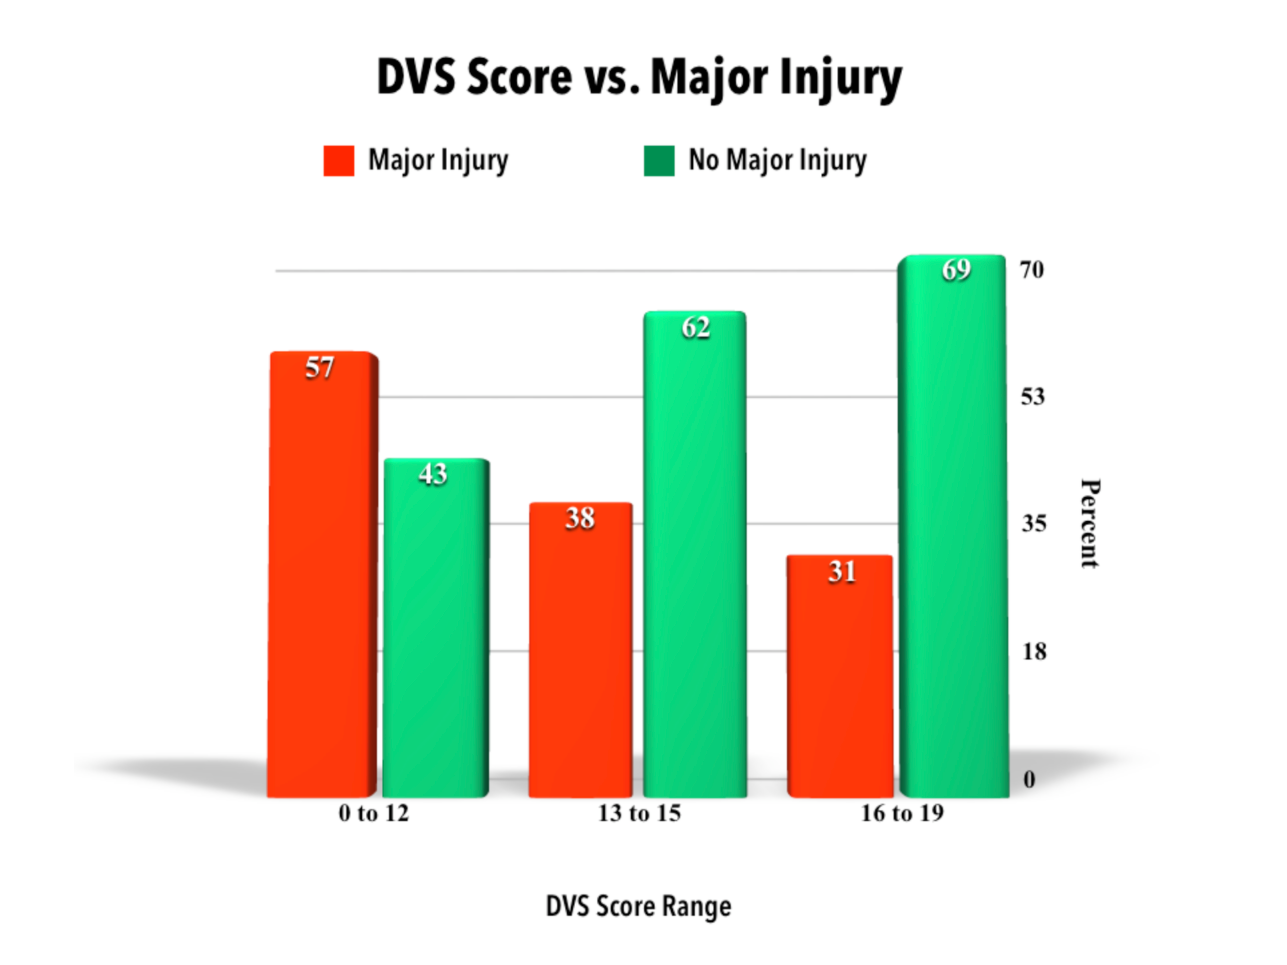 DVS Scoring System - We have compiled years of research and data collection into a single quantifiable number referred to as a DVS Score. The DVS Score of a pitcher objectively evaluates the movements of a pitcher's delivery to remove any bias towards a specific methodology or style. The movements are broken down into individual components of the pitching delivery, which are examined and measured across multiple angles to calculate accurate scoring.